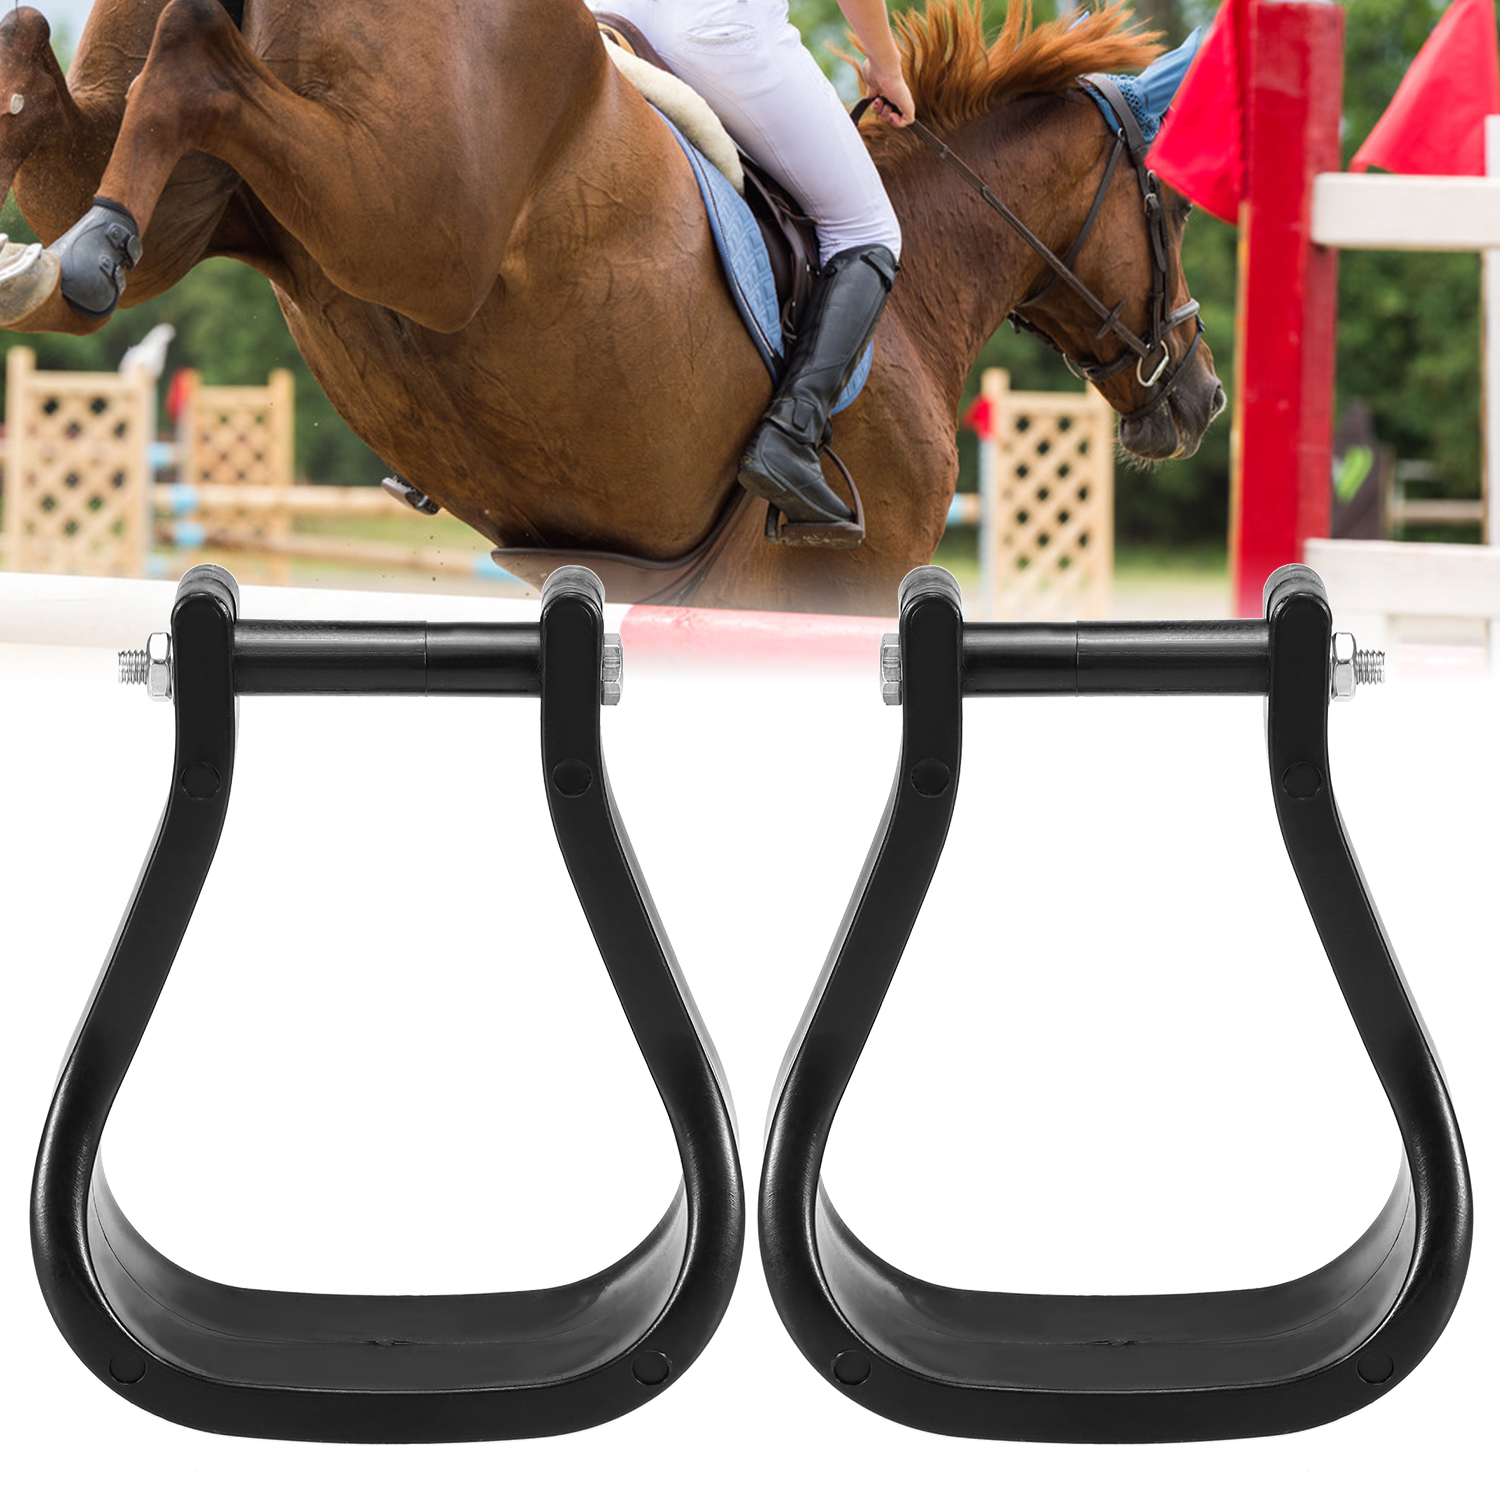 1 Pair Plastic Western Horse Riding Stirrups Knight Equipment Equestrian Supplies Outdoor Sports Body Protectors Aliexpress